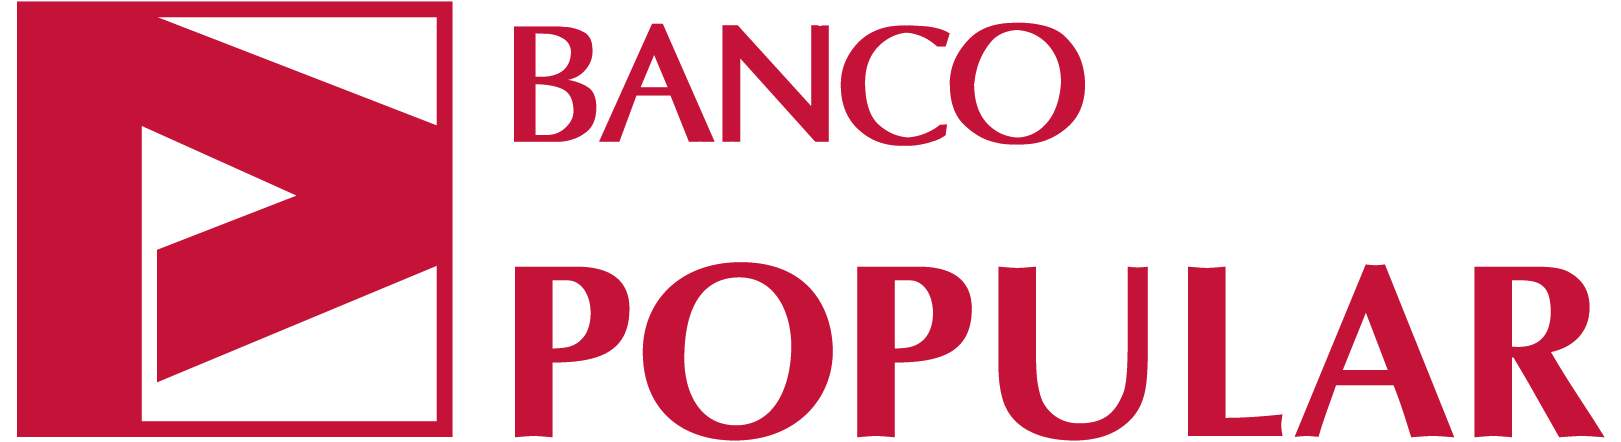 http://upload.wikimedia.org/wikipedia/commons/1/1a/Bancopopular.jpg